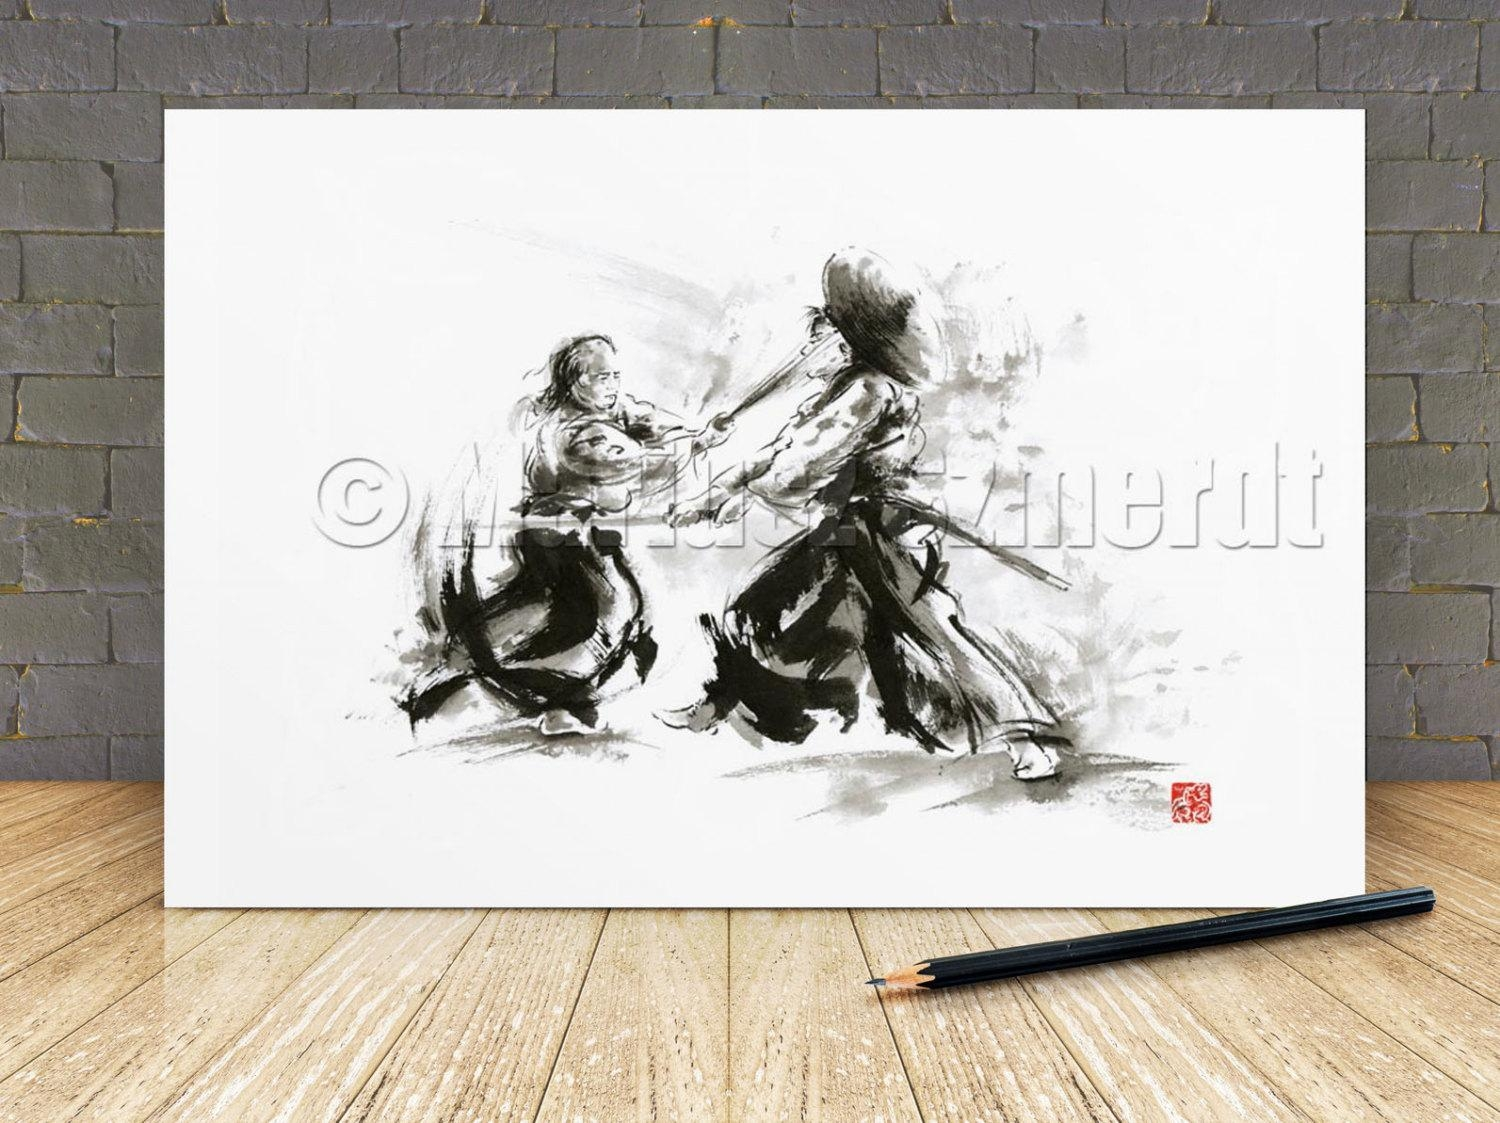 Samurai Art Print Samurai Art Samurai Helmet Ronin Samurai Regarding Samurai Wall Art (View 4 of 20)